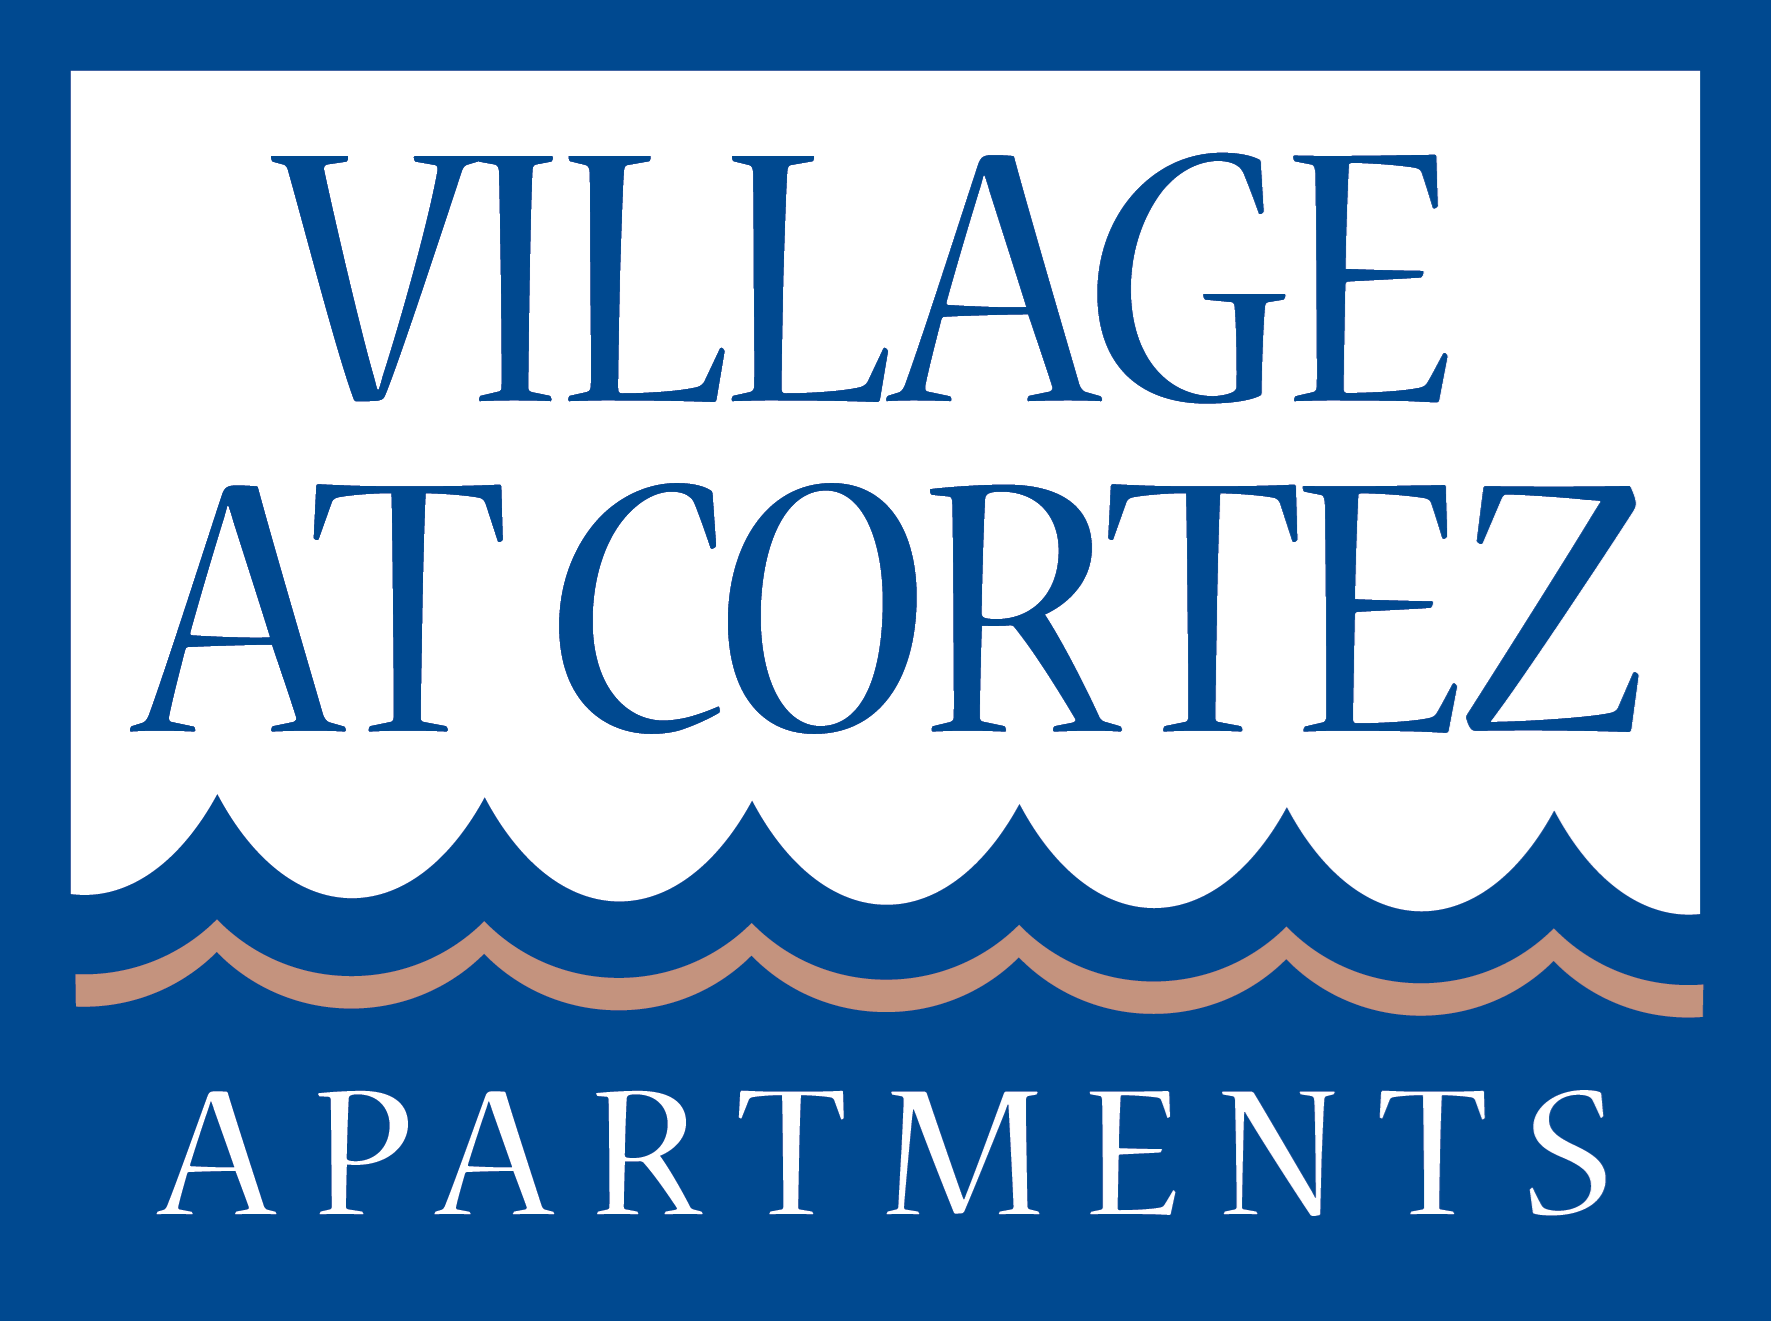 Village at Cortez Apartments for rent in Bradenton, FL. Make this community your new home or visit other ConcordRENTS communities at ConcordRENTS.com. Logo